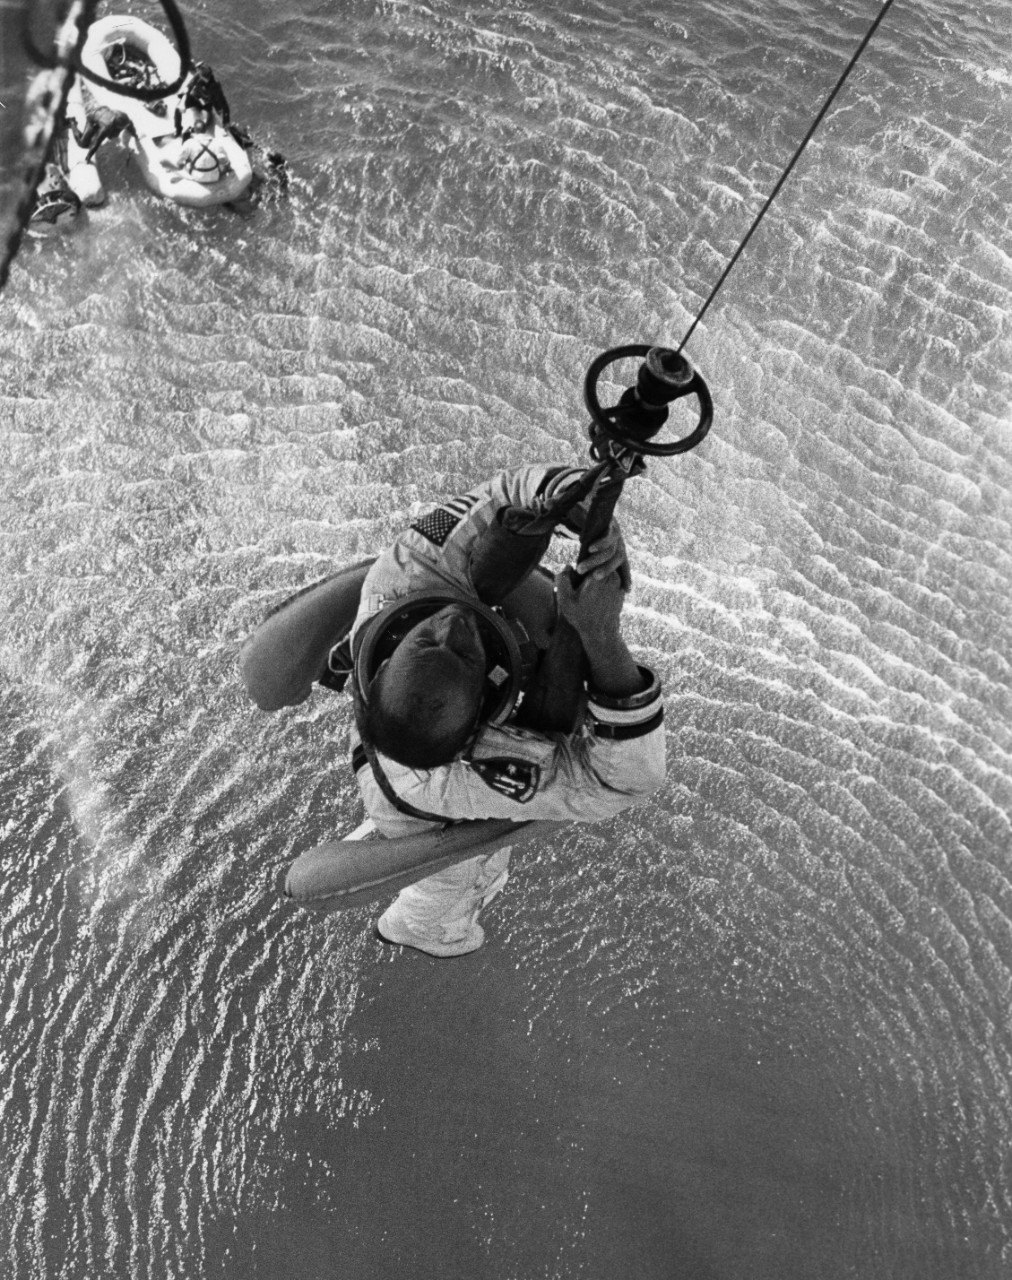 Gemini 11 astronaut Charles Conrad is hoisted aboard a recovery helicopter, with astronaut Richard Gordon in the raft below.